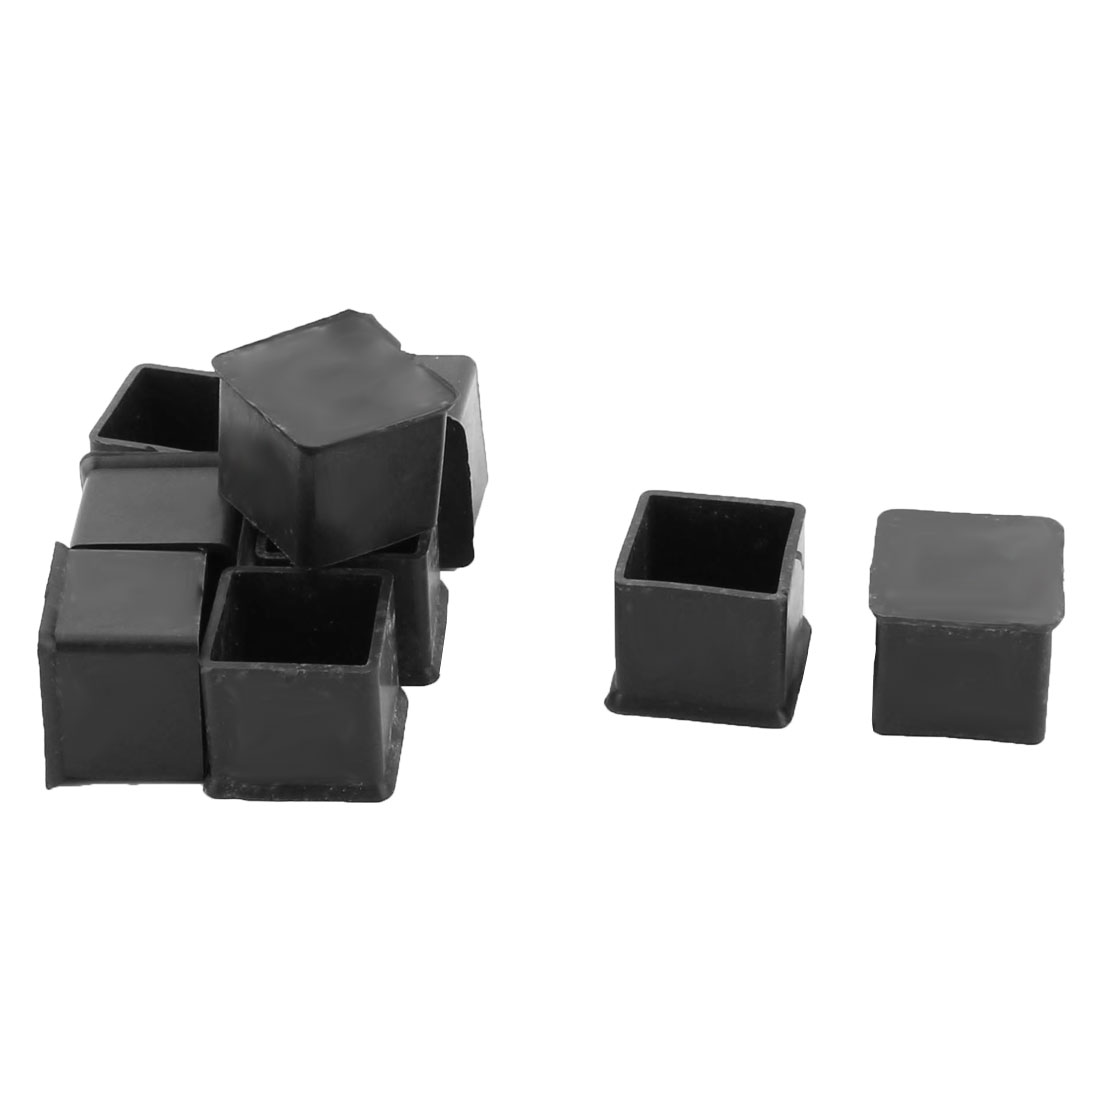 Home Rubber Square Shaped Anti Scratch Furniture Desk Foot Cover Protection Pad Black 9pcs